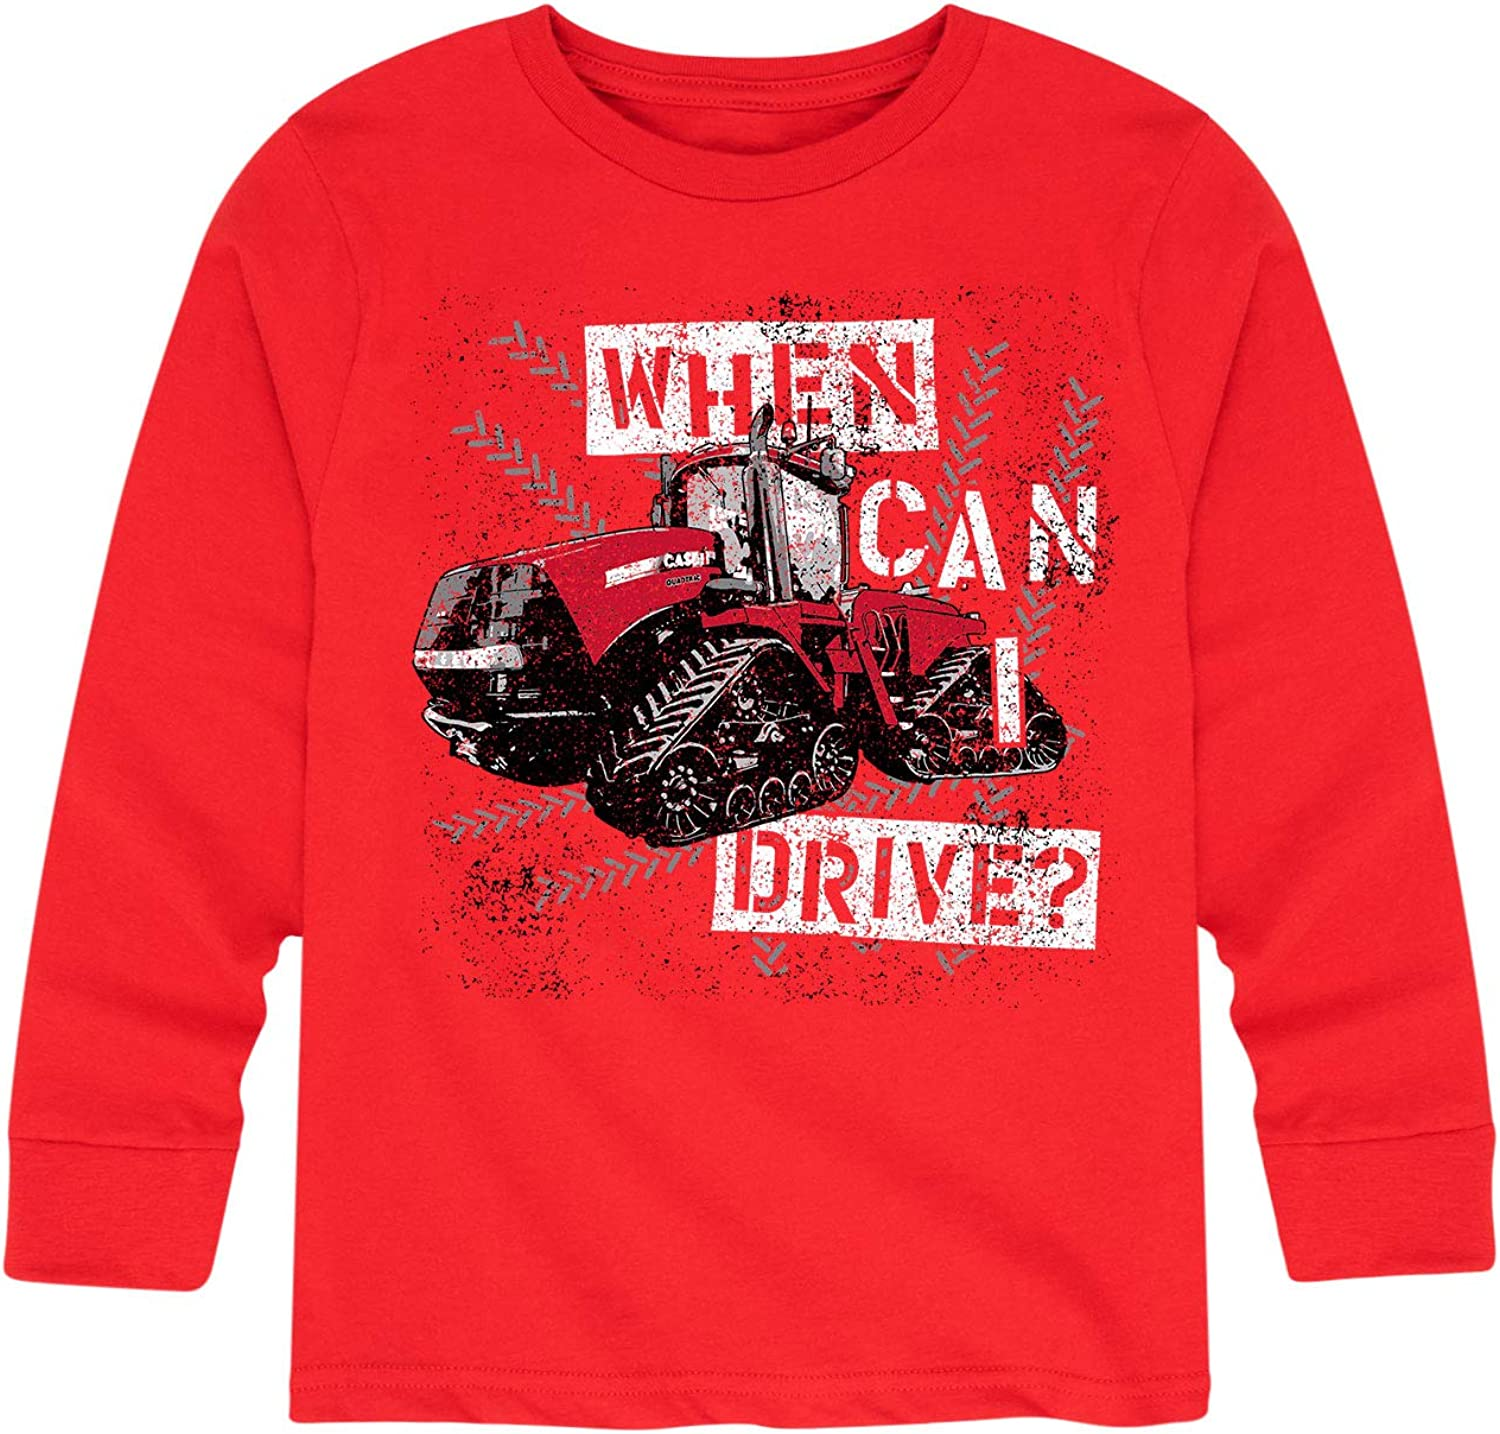 When Can I Drive - Youth Long Sleeve T-Shirt